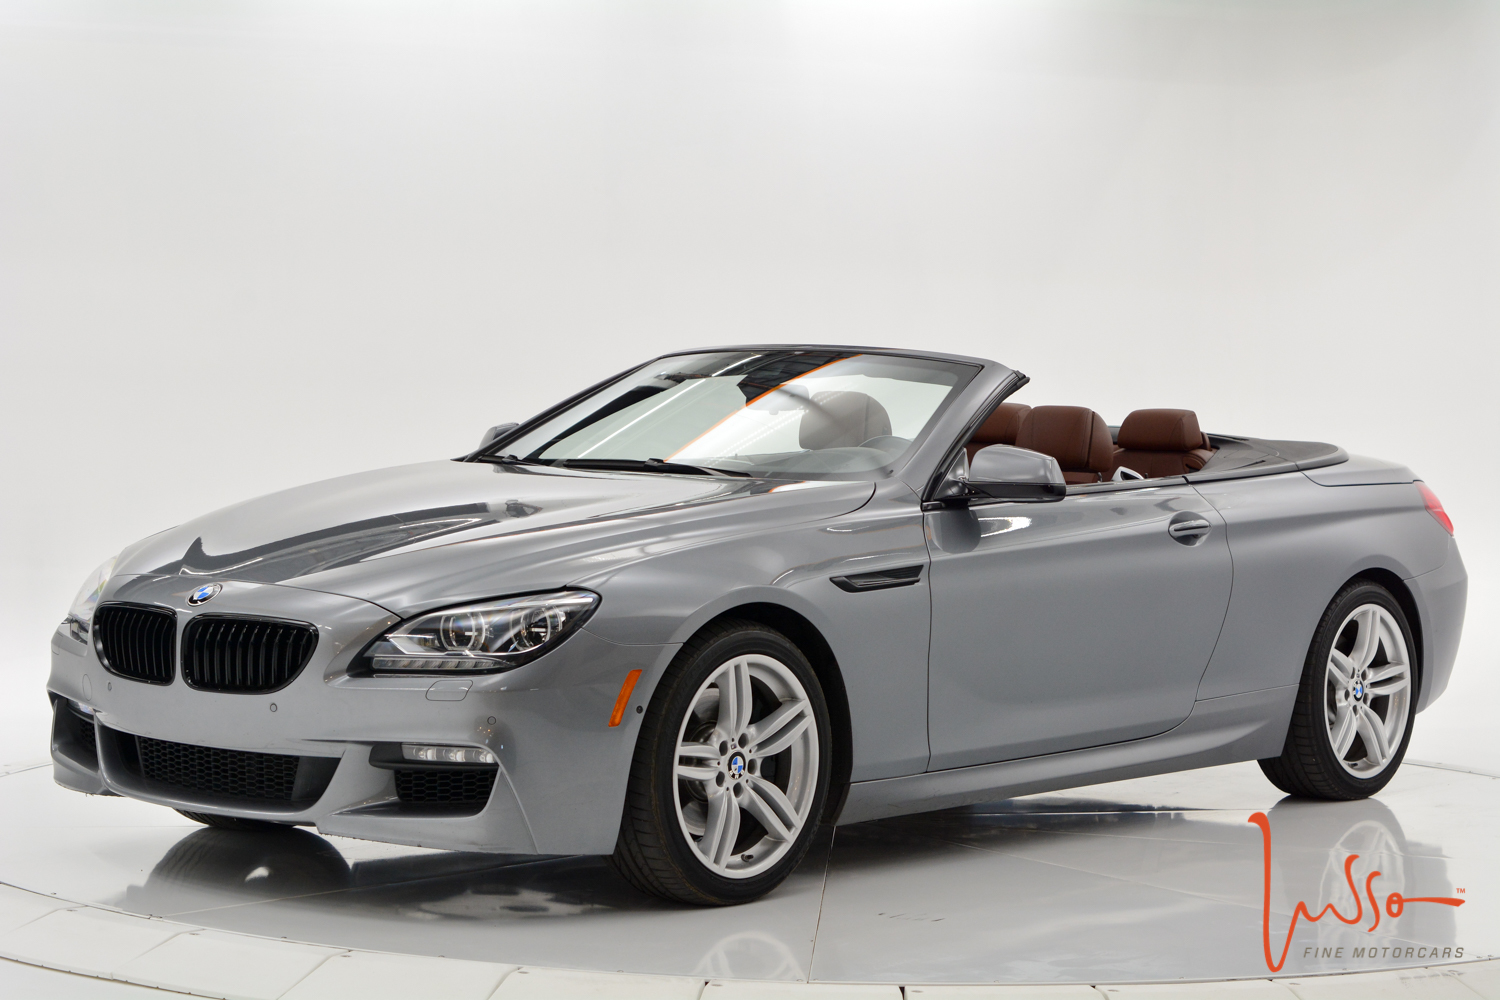 2013 bmw 650xi base convertible 2 door ebay. Black Bedroom Furniture Sets. Home Design Ideas